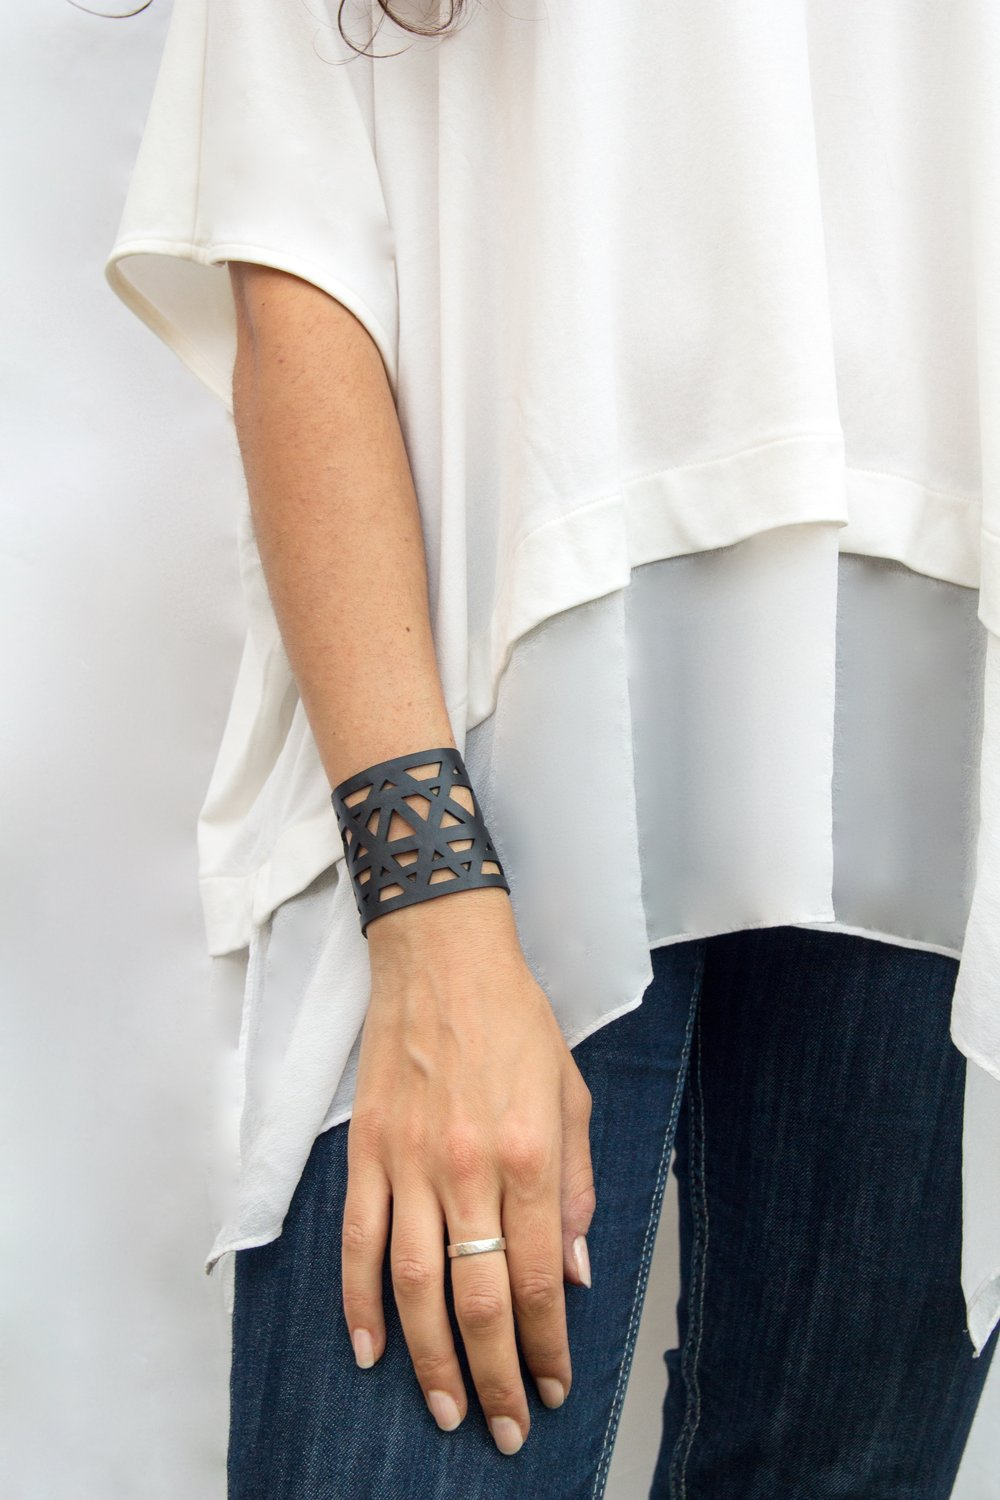 VARUNA CUFF | $45 - The Varuna Cuff is upcycled from the inner tubes of tires and lovingly handcrafted in Bali. The comfortable waterproof material makes it perfect for everyday wear while the geometric pattern makes it a statement piece that can dress up any outfit!